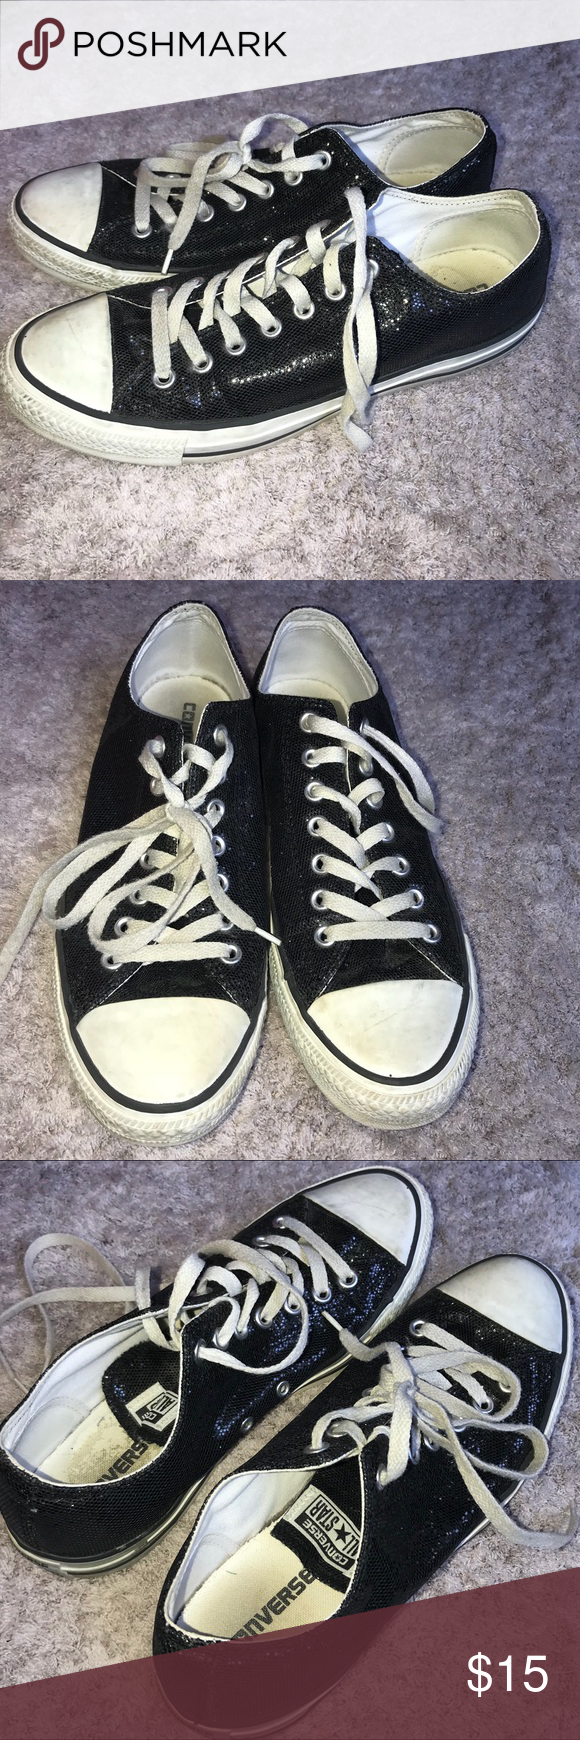 81114730f767eb Converse All Star Glitter Sneakers Size 11 These are in good condition